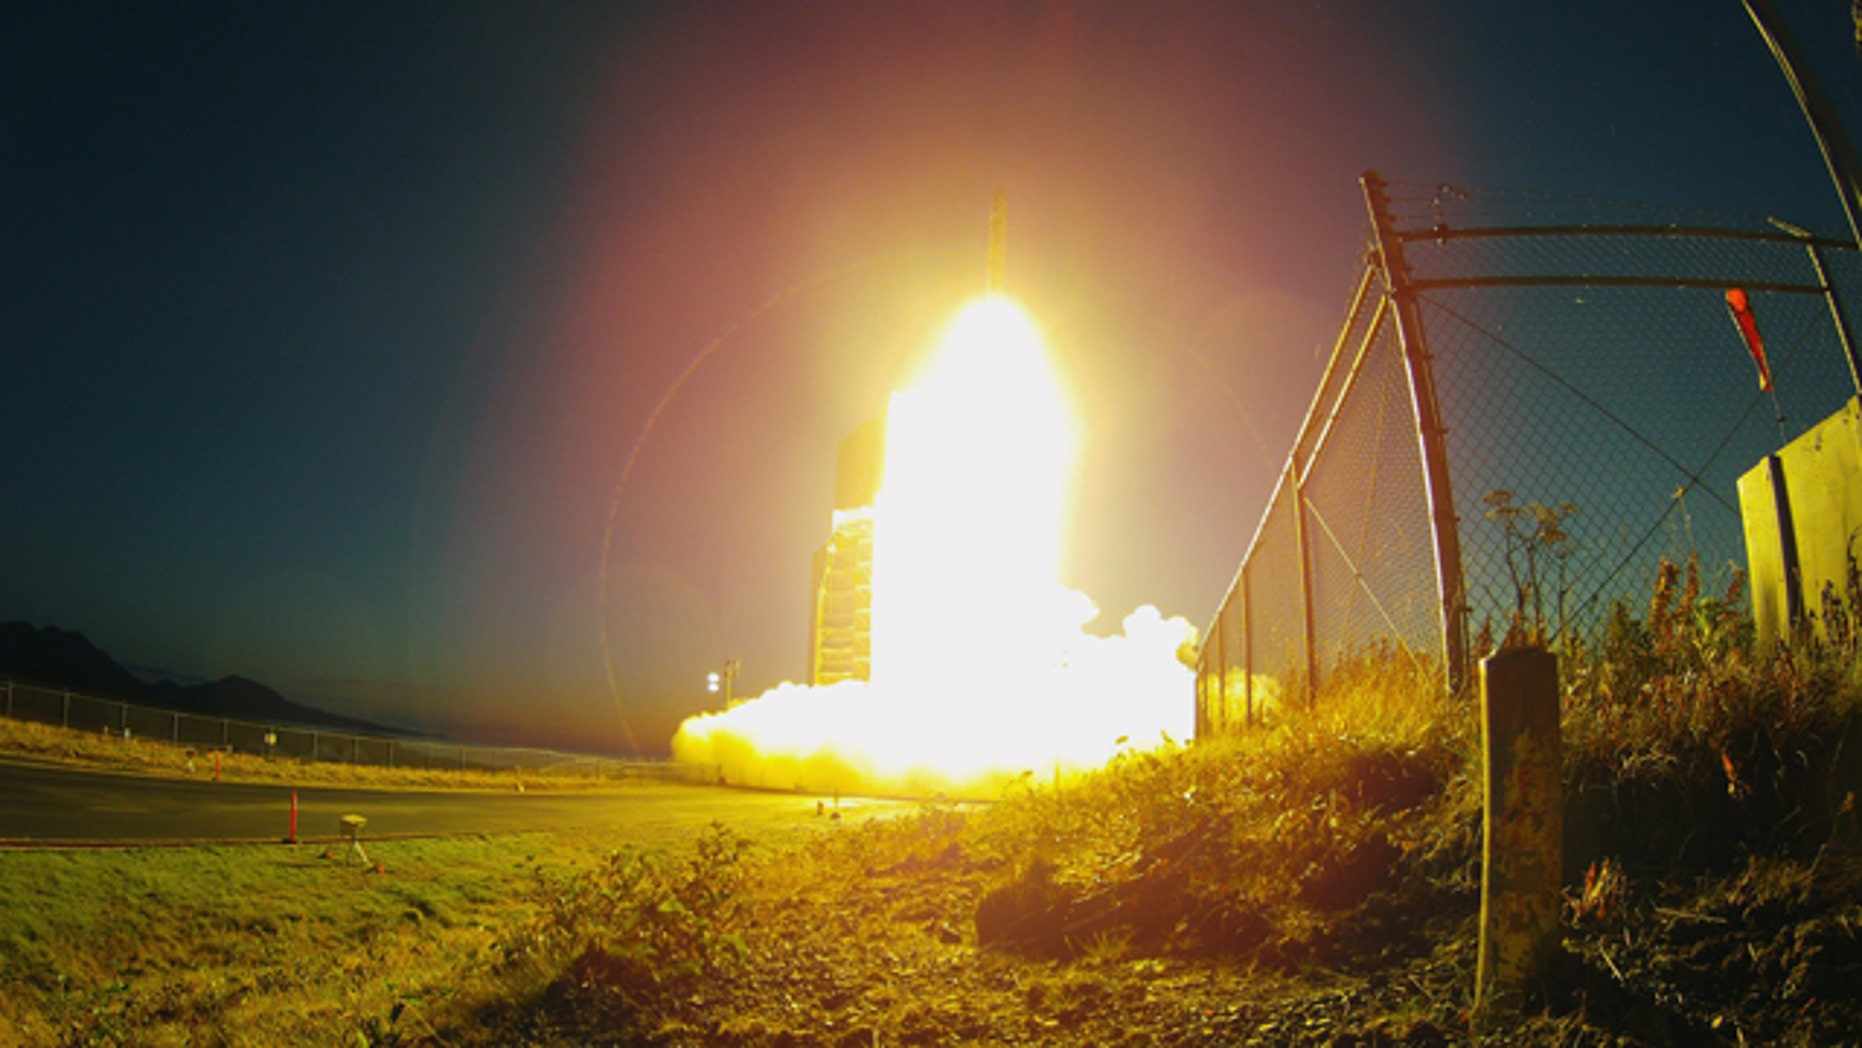 Sept. 27, 2011: The Office of Naval Research-sponsored tactical satellite IV (TacSat-4) lifts-off from the Alaskan Aerospace Corporation's Kodiak Launch Complex aboard a Minotaur IV+ launch vehicle.